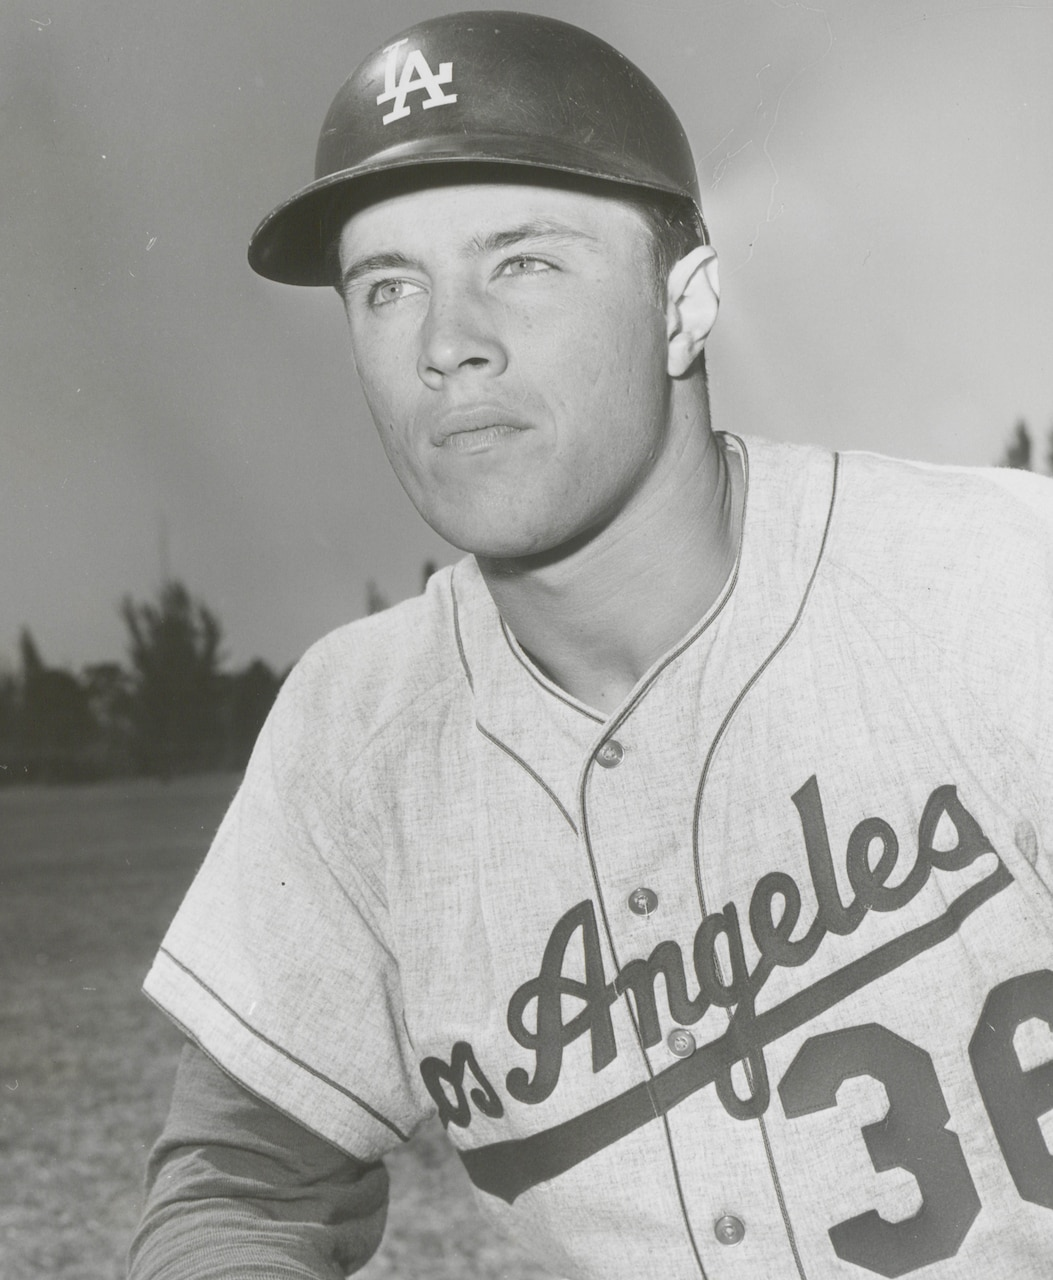 Baseball player in an L.A. Dodgers uniform is pictured.